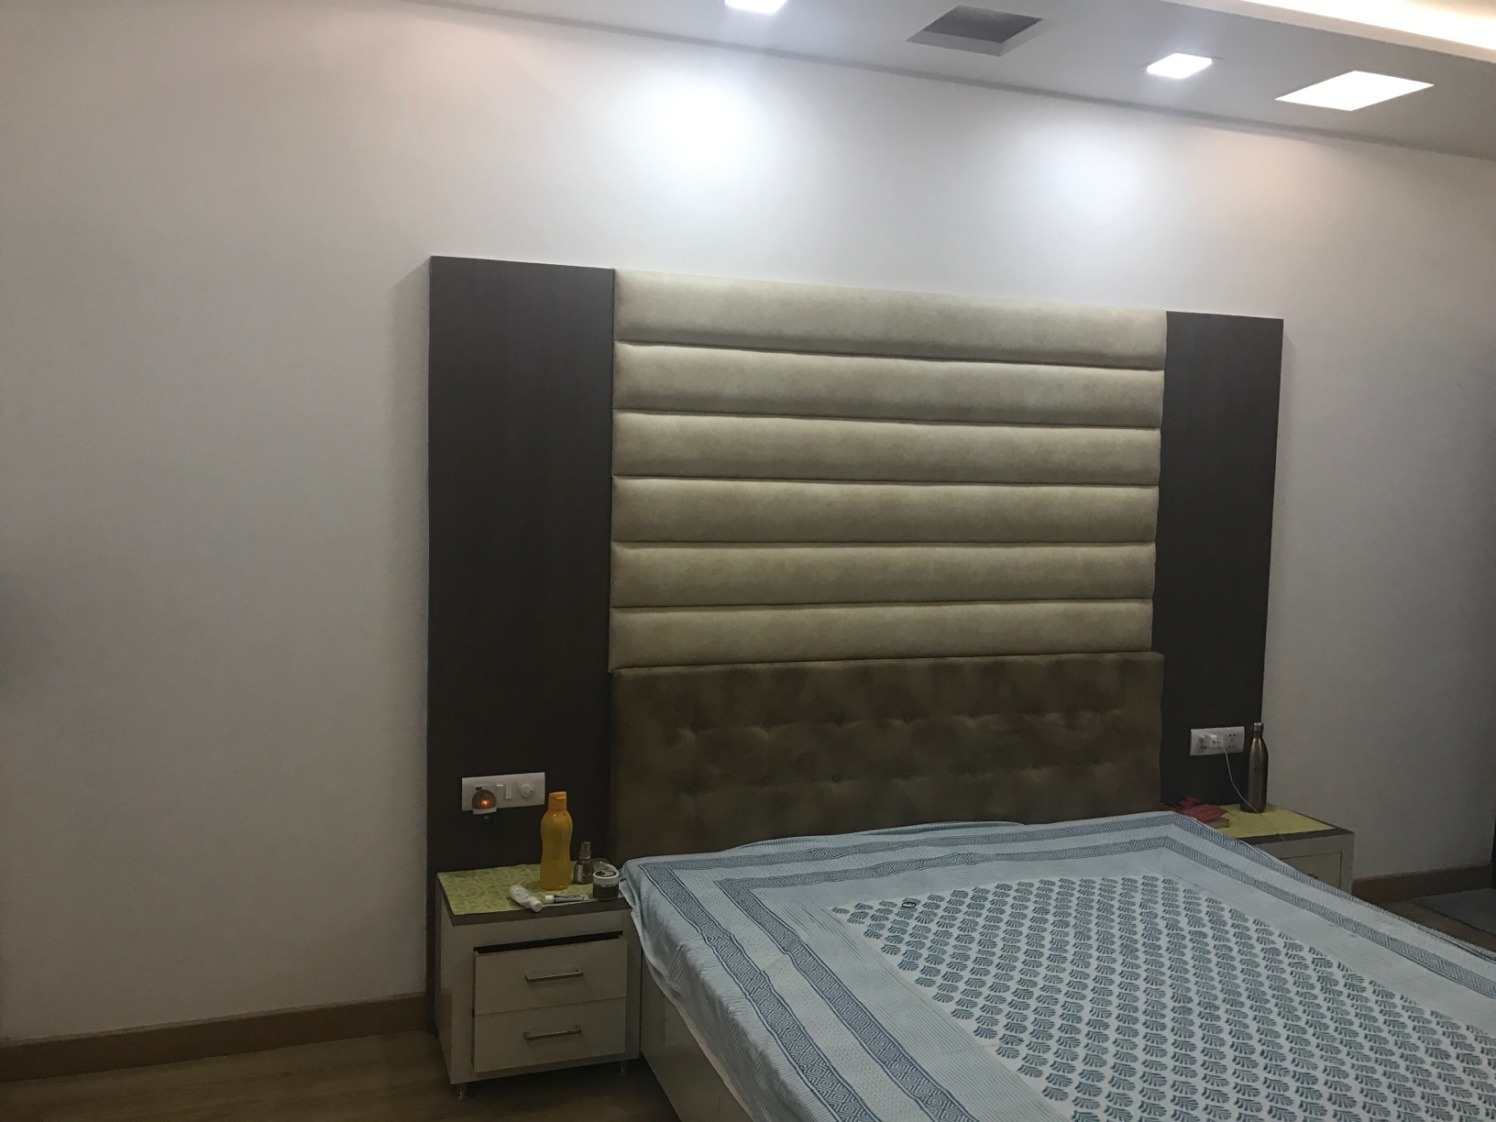 Basic Queen Size Bed with Cushioned Headboard and False Ceiling by Ar. Barkha Jain Bedroom Minimalistic | Interior Design Photos & Ideas